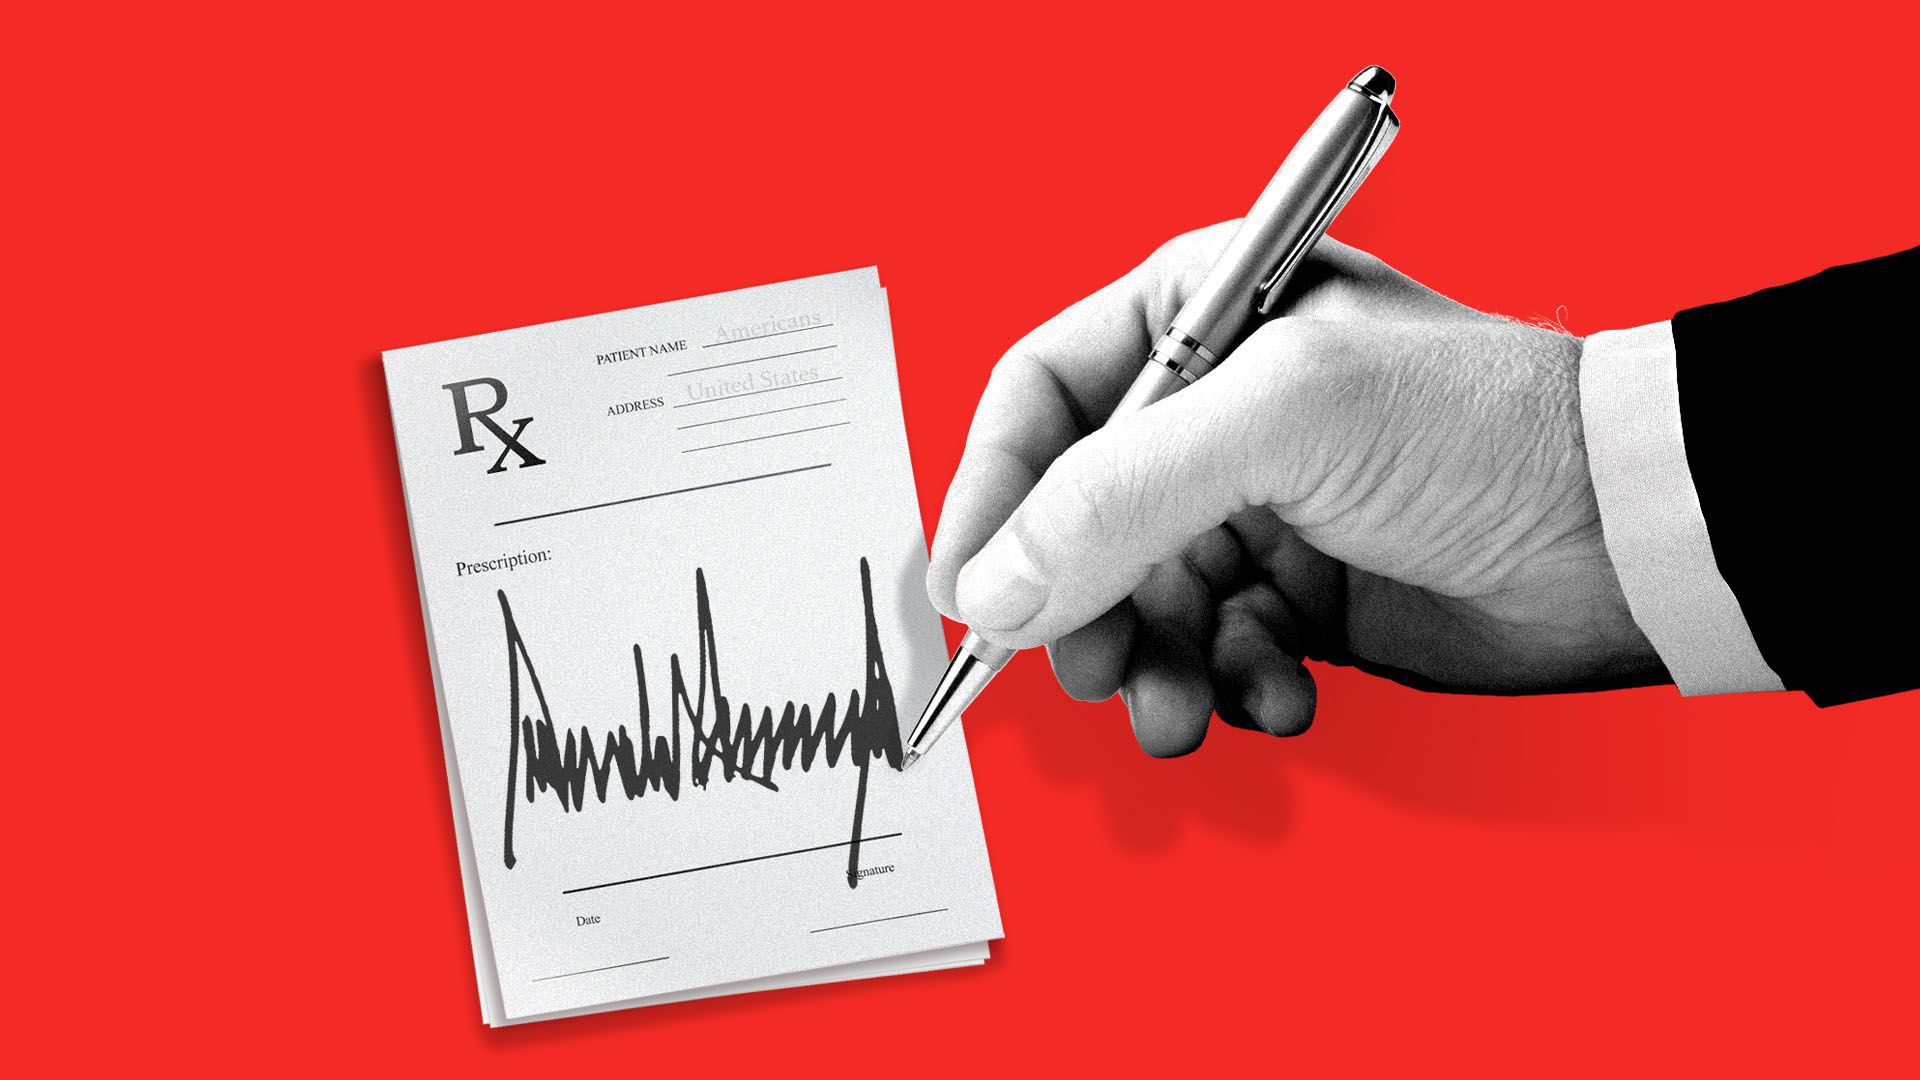 Illustration of Trump writing a prescription pad